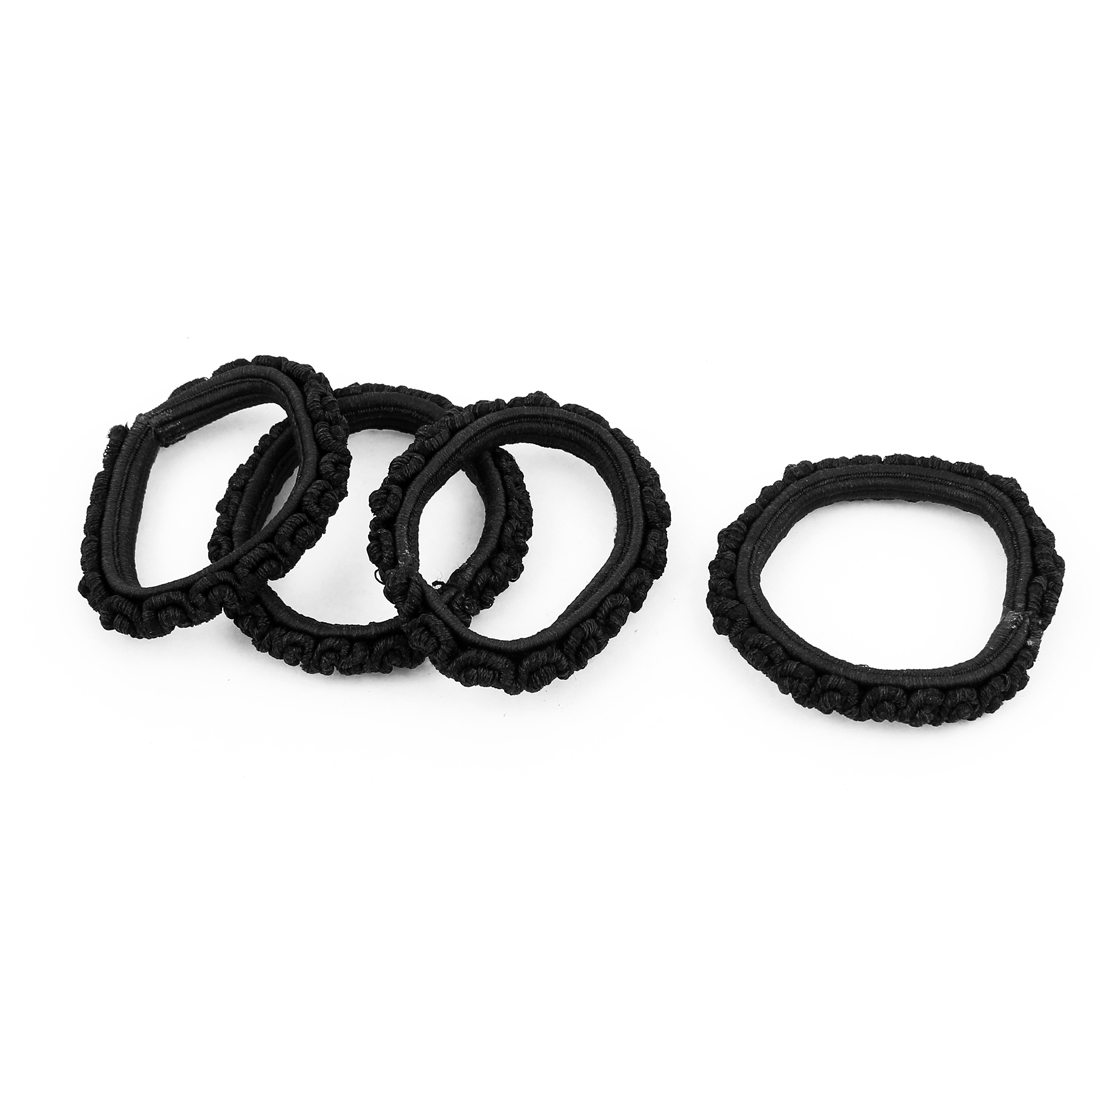 Elastic Rubber Hair Bands Ponytail Holder Black 4 Pcs